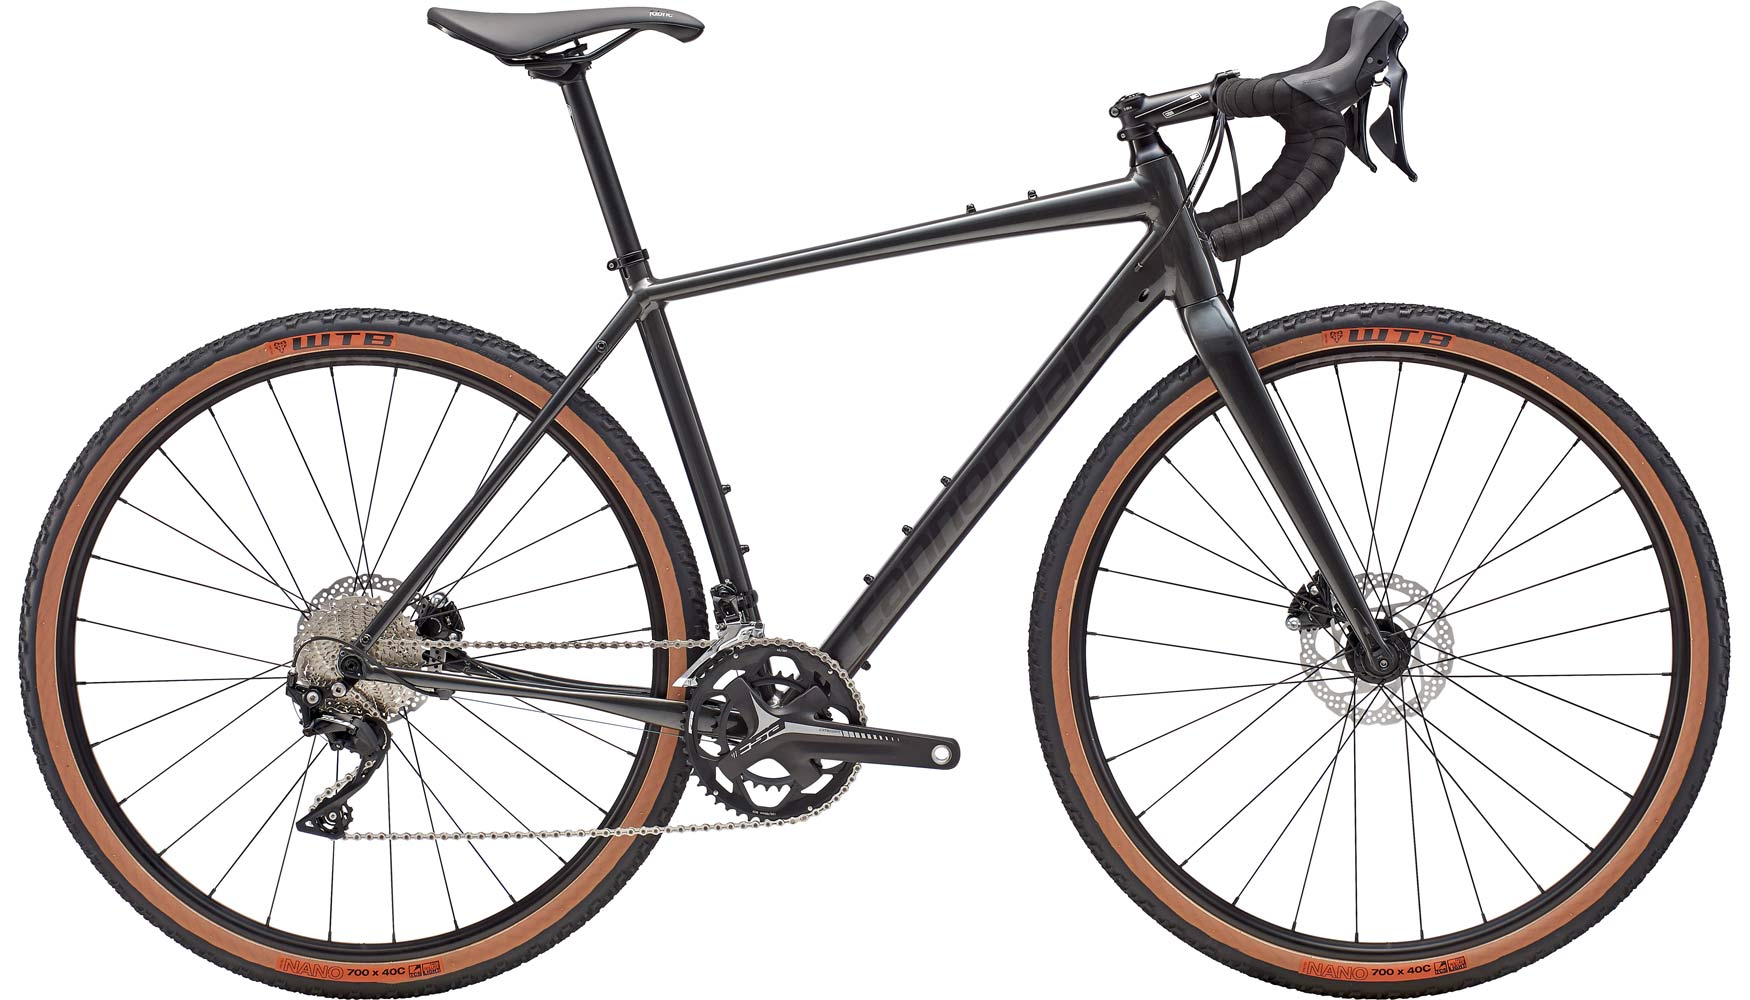 2019 Cannondale Topstone alloy gravel road bike with endurance geometry and wide tire clearance